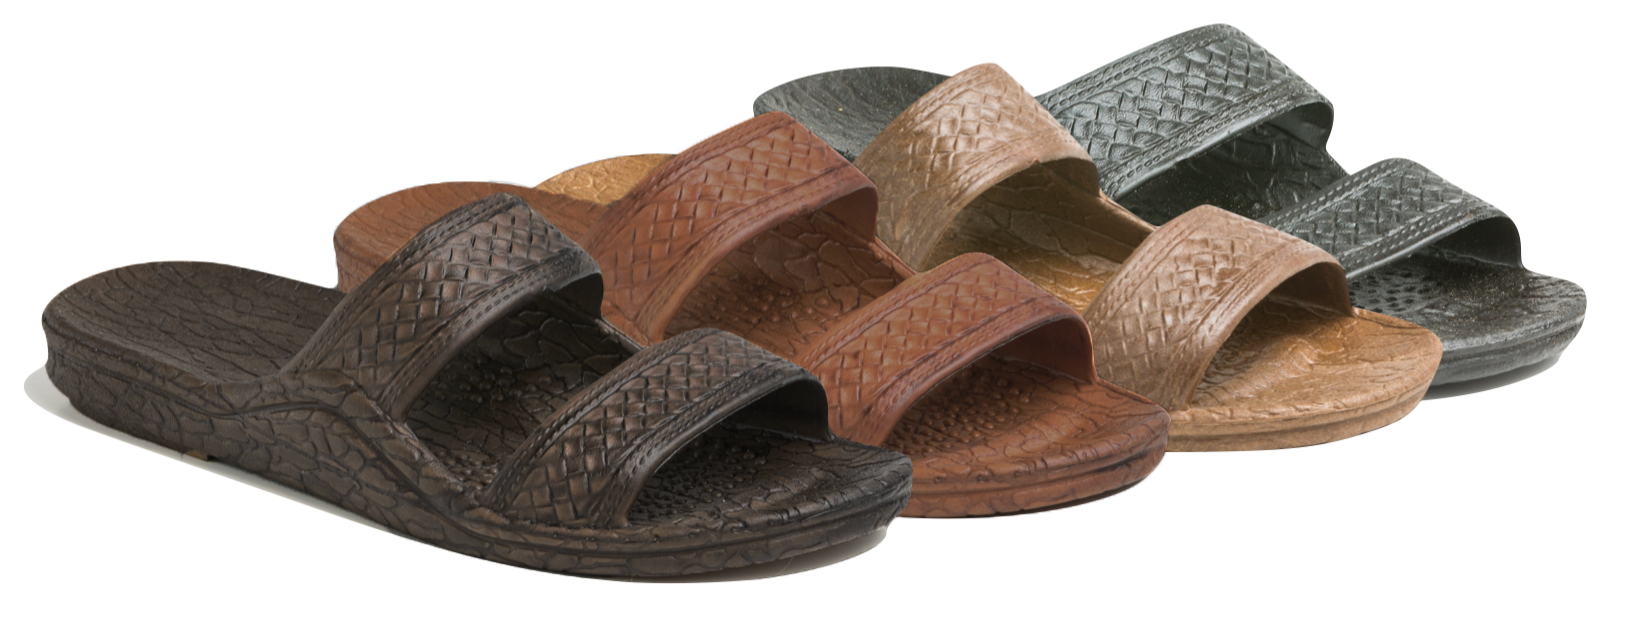 Left to Right : Dark Brown, Light Brown, Brown and Black.